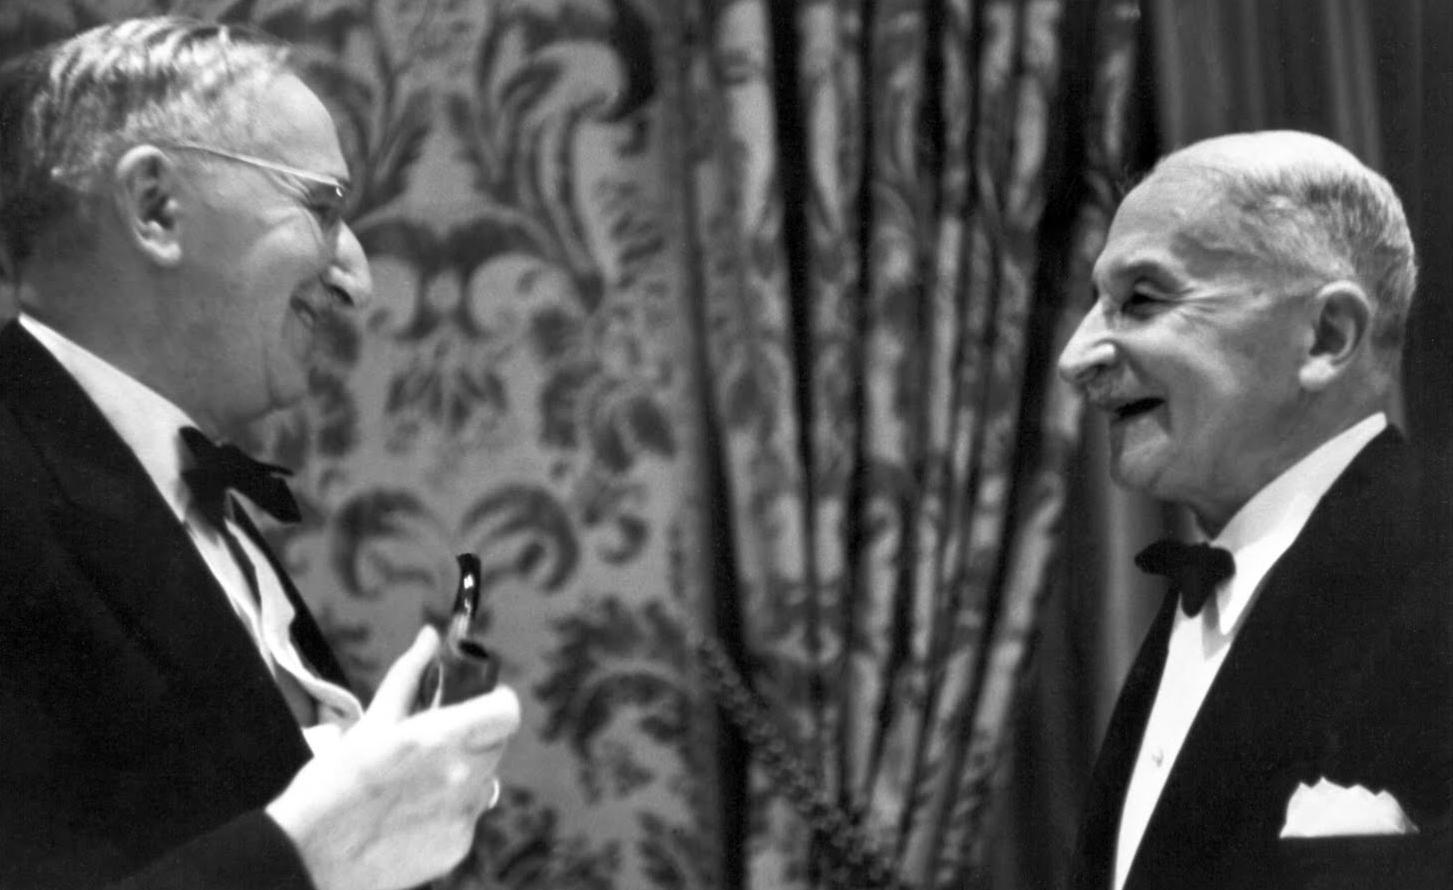 Two leaders of the Austrian school - Friedrich Hayek (left) and Ludwig von Mises (right). Date unavailable.